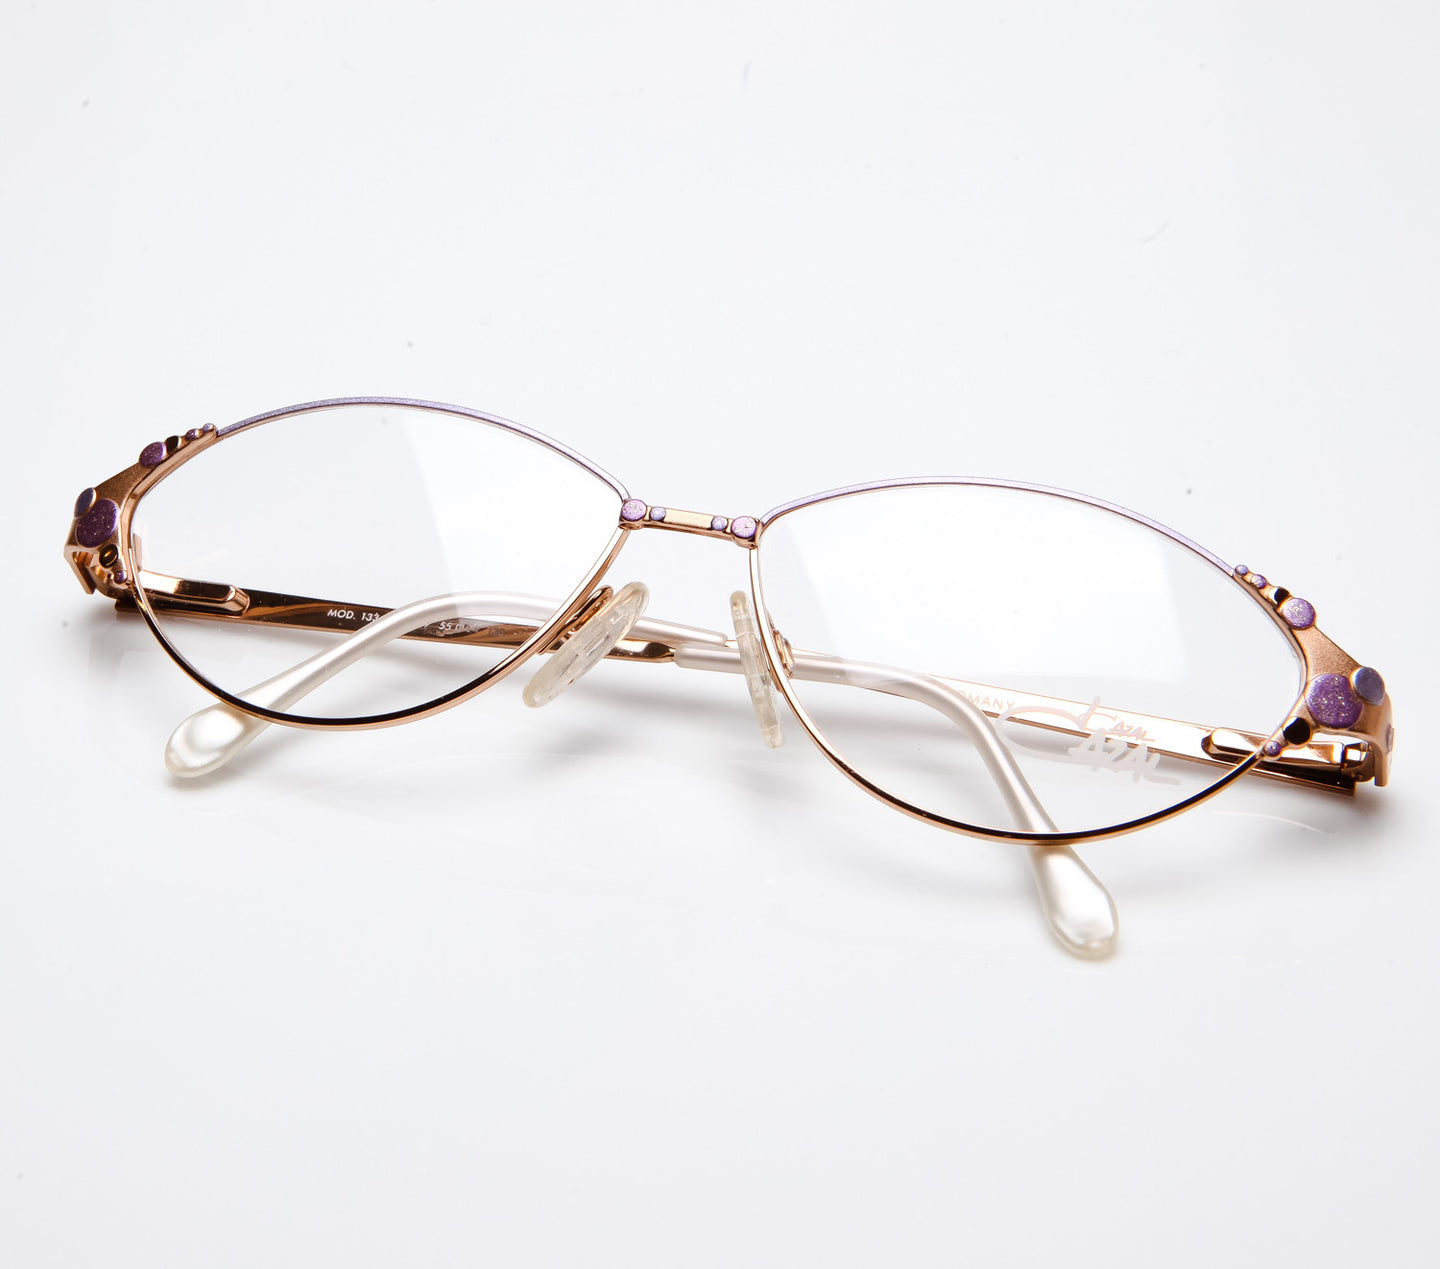 Cazal 133 977, Cazal , glasses frames, eyeglasses online, eyeglass frames, mens glasses, womens glasses, buy glasses online, designer eyeglasses, vintage sunglasses, retro sunglasses, vintage glasses, sunglass, eyeglass, glasses, lens, vintage frames company, vf